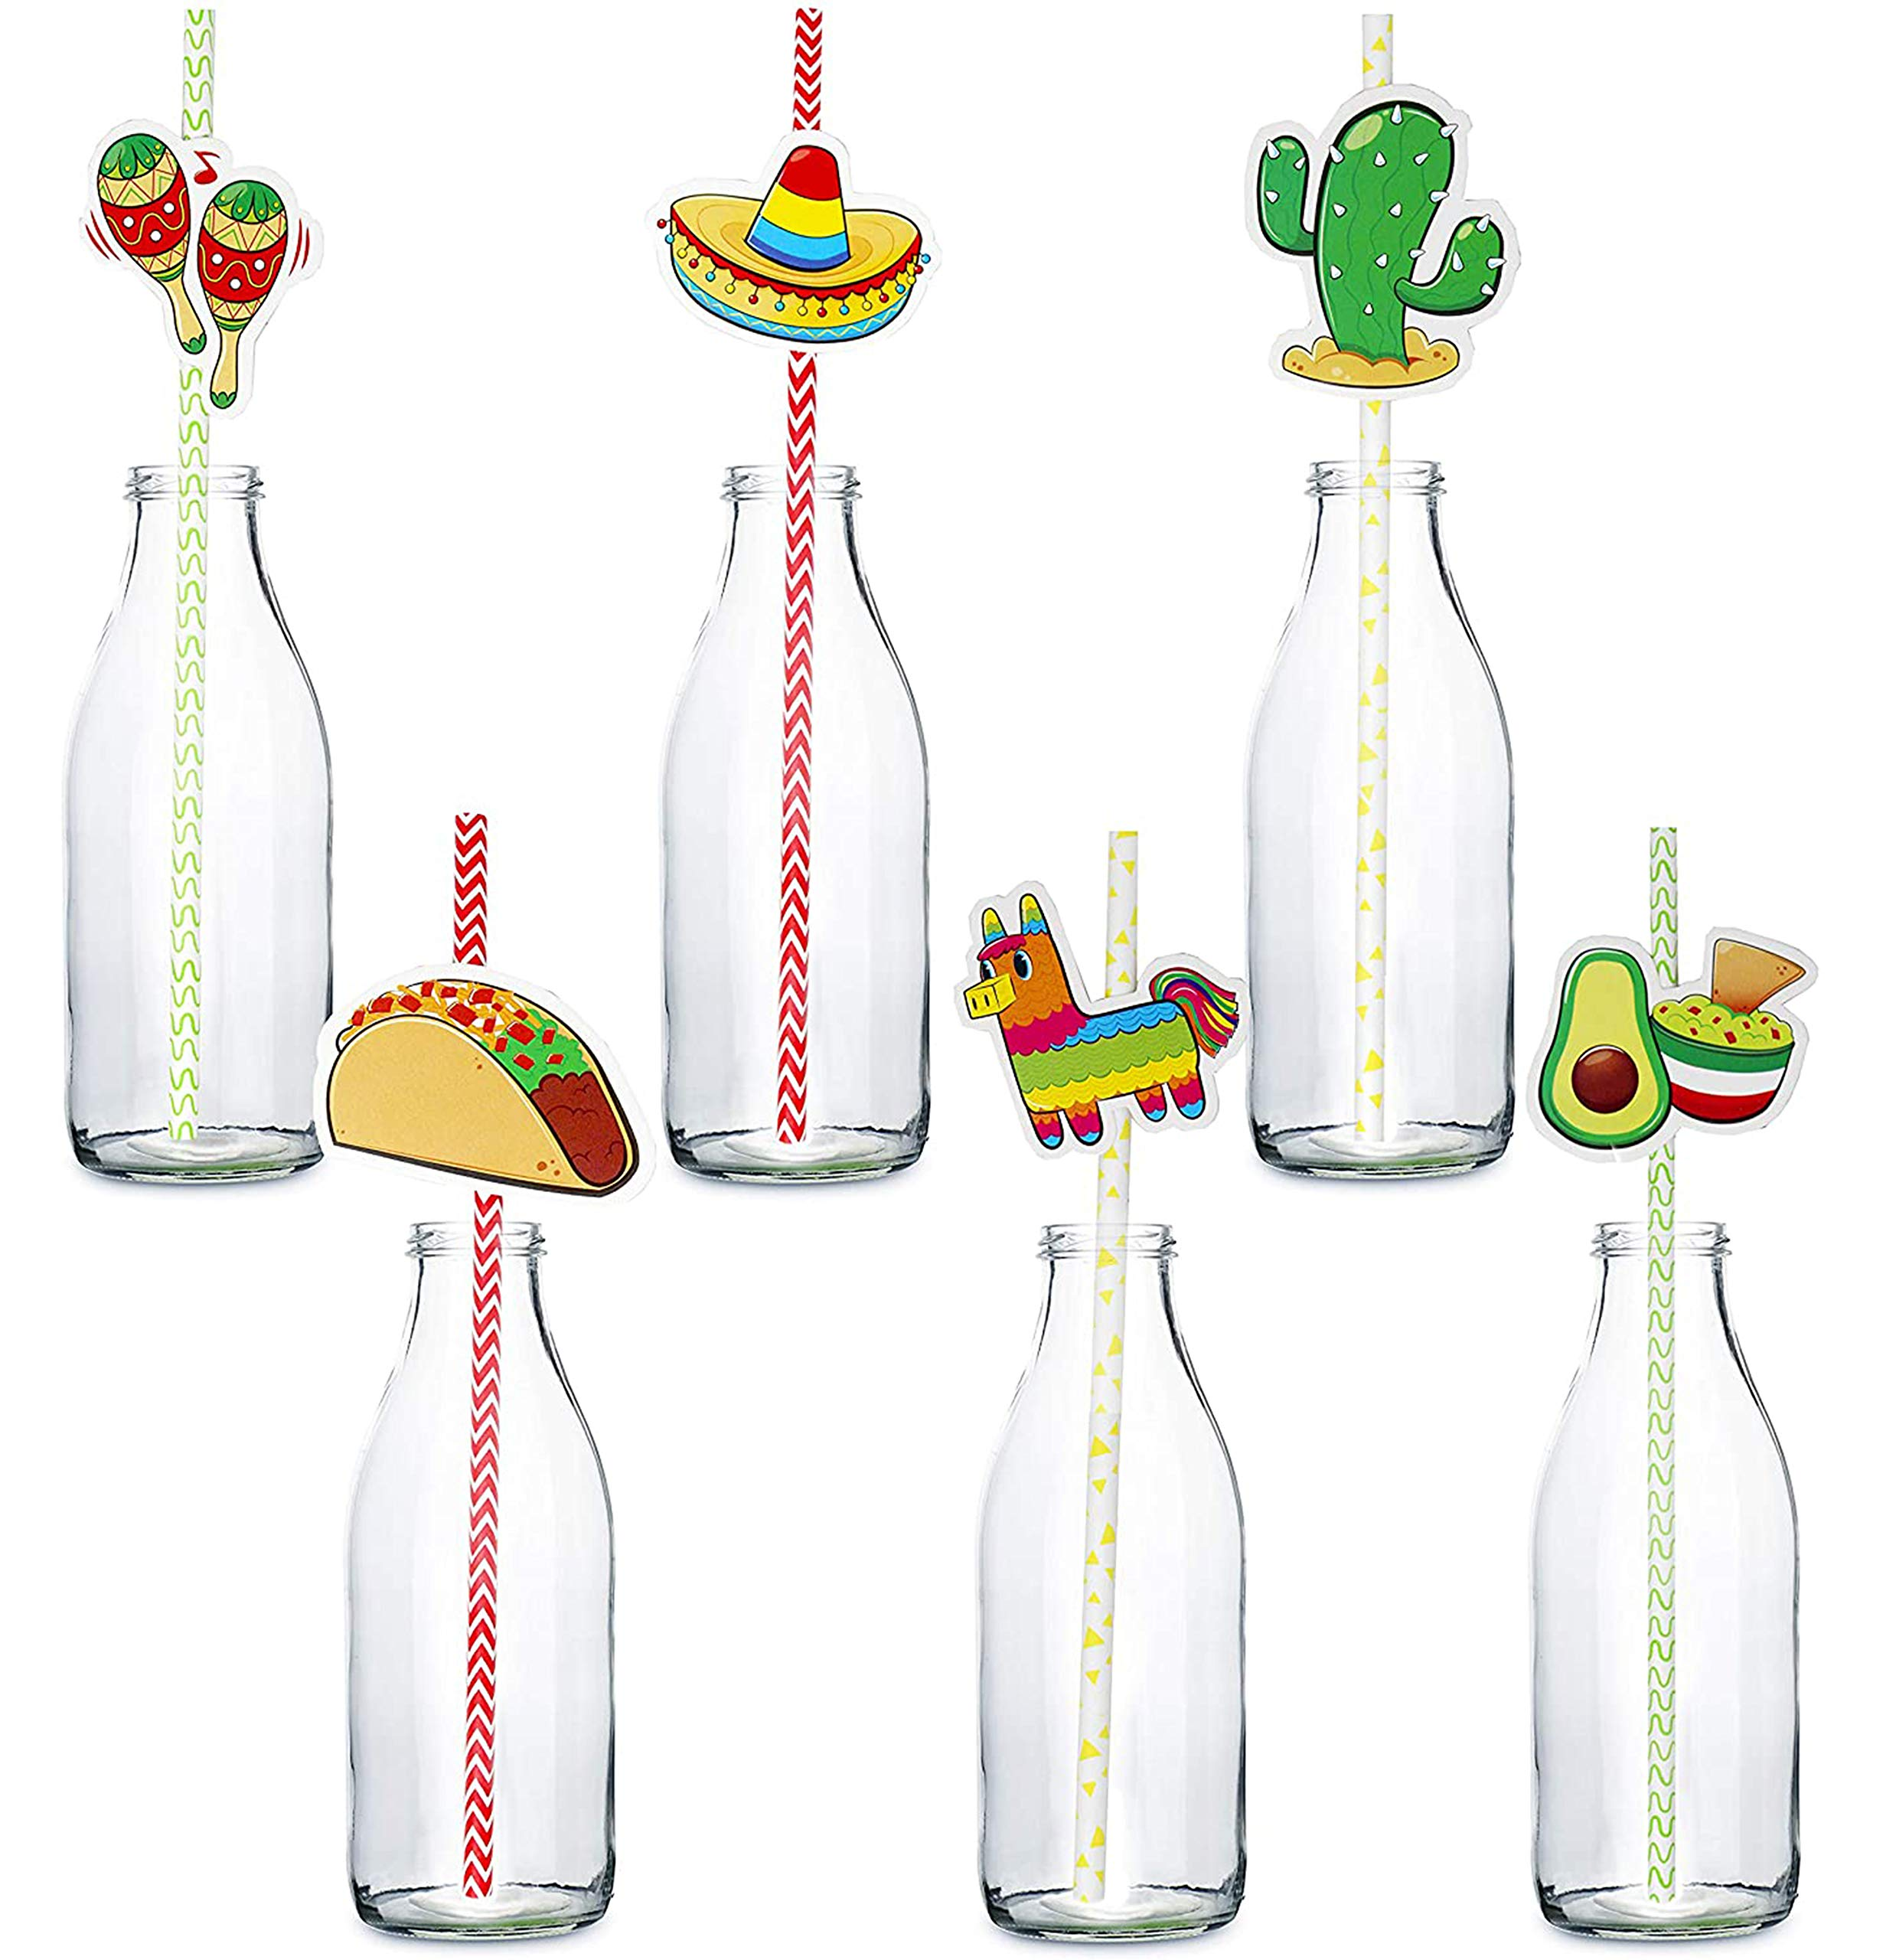 72 Packs Cinco De Mayo Fiesta Paper Striped Straws Party Decoration for Fun Fiesta Taco Party Supplies, Luau Event Photo Props, Mexican Theme for Carnivals Festivals, Dia De Muertos, Coco Theme, Wedding, Birthdays and Party Favors